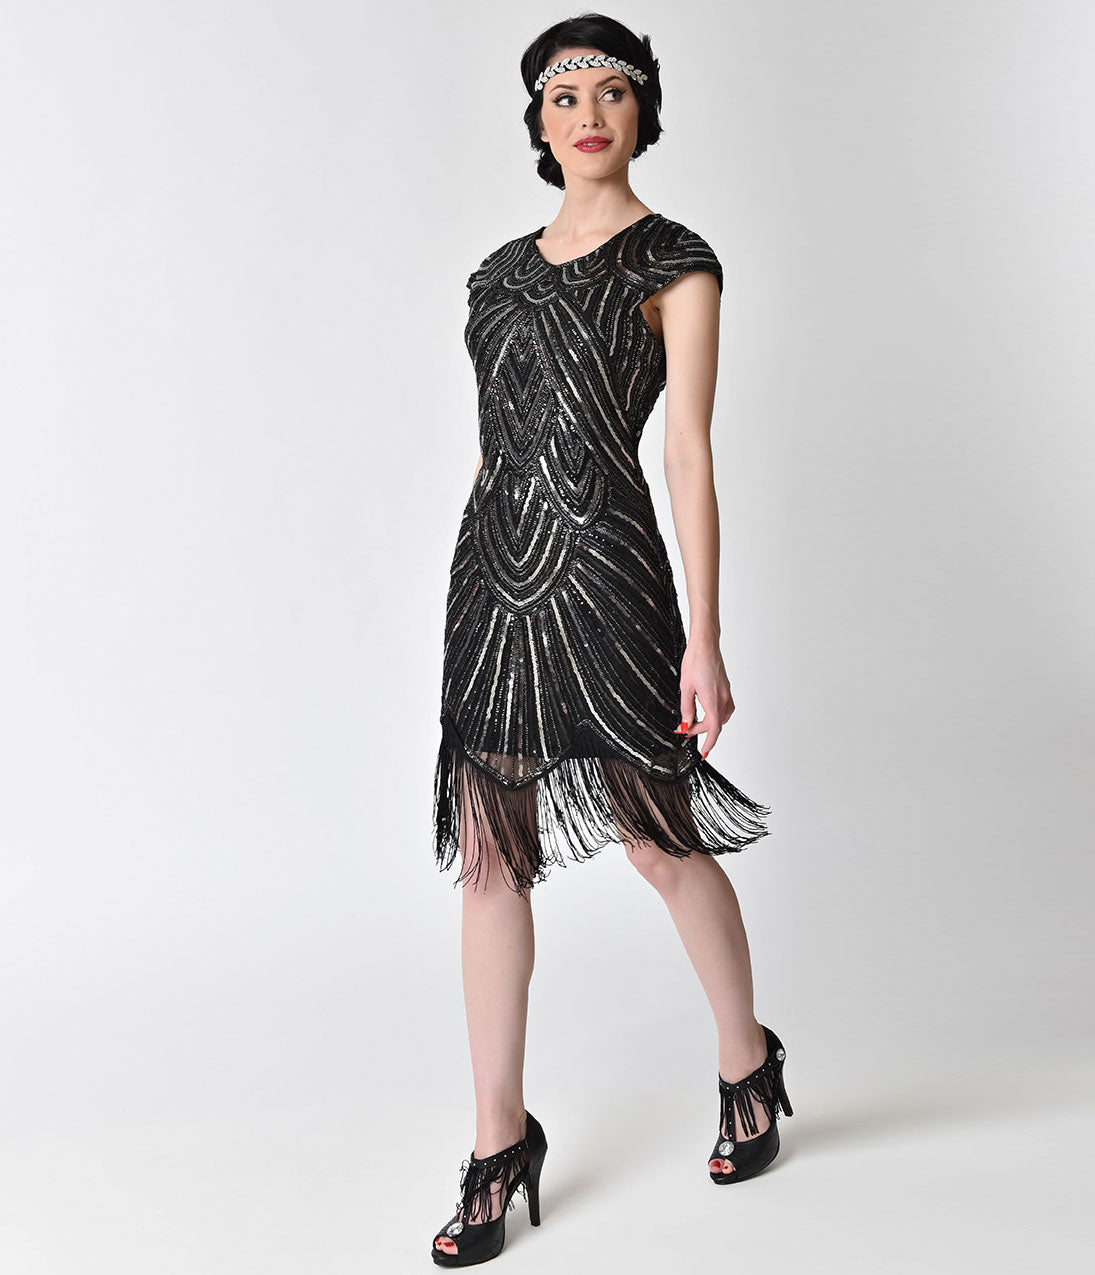 1920s Style Dresses, Flapper Dresses 1920s Style Black  Silver Sequin Mesh Cap Sleeve Fringe Flapper Dress $88.00 AT vintagedancer.com